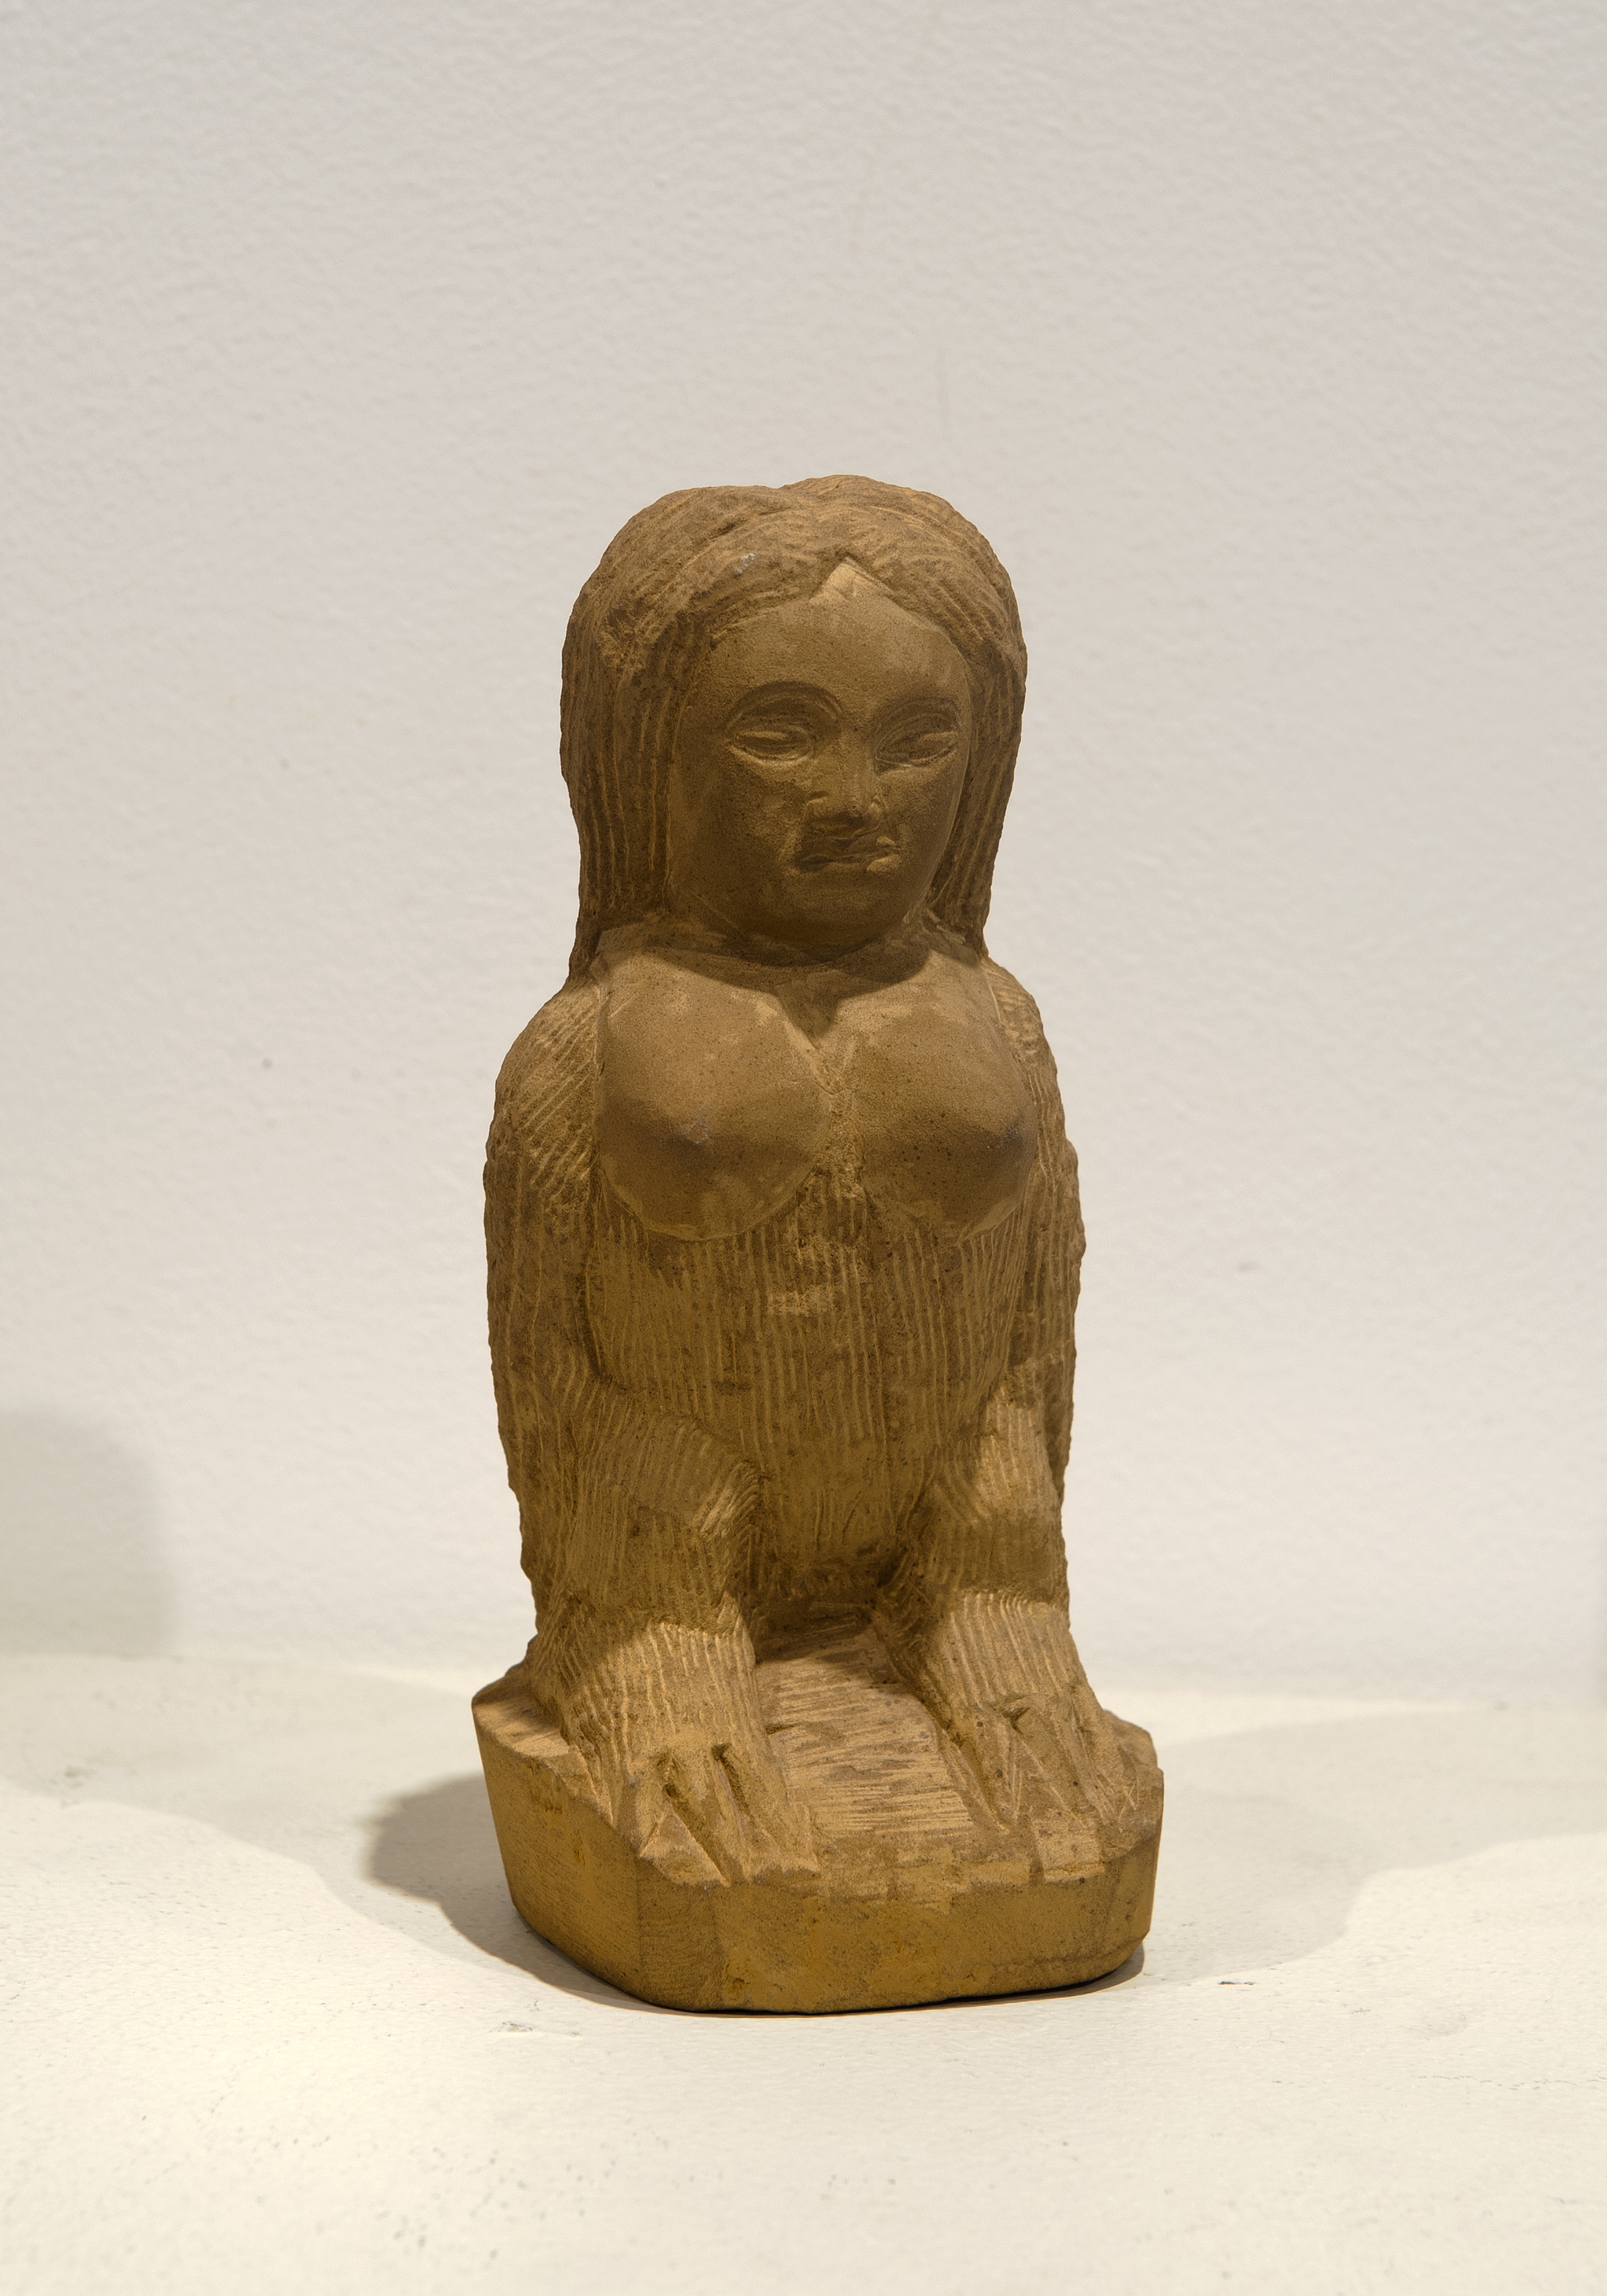 "Ernest ""Popeye"" Reed (American, 1919-1985).  Untitled (Female figure/bird) , n.d. Carved stone, 8 ½ x 4 x 3 ½ in. Intuit: The Center for Intuitive and Outsider Art, gift of Jan Petry, 2012.4"